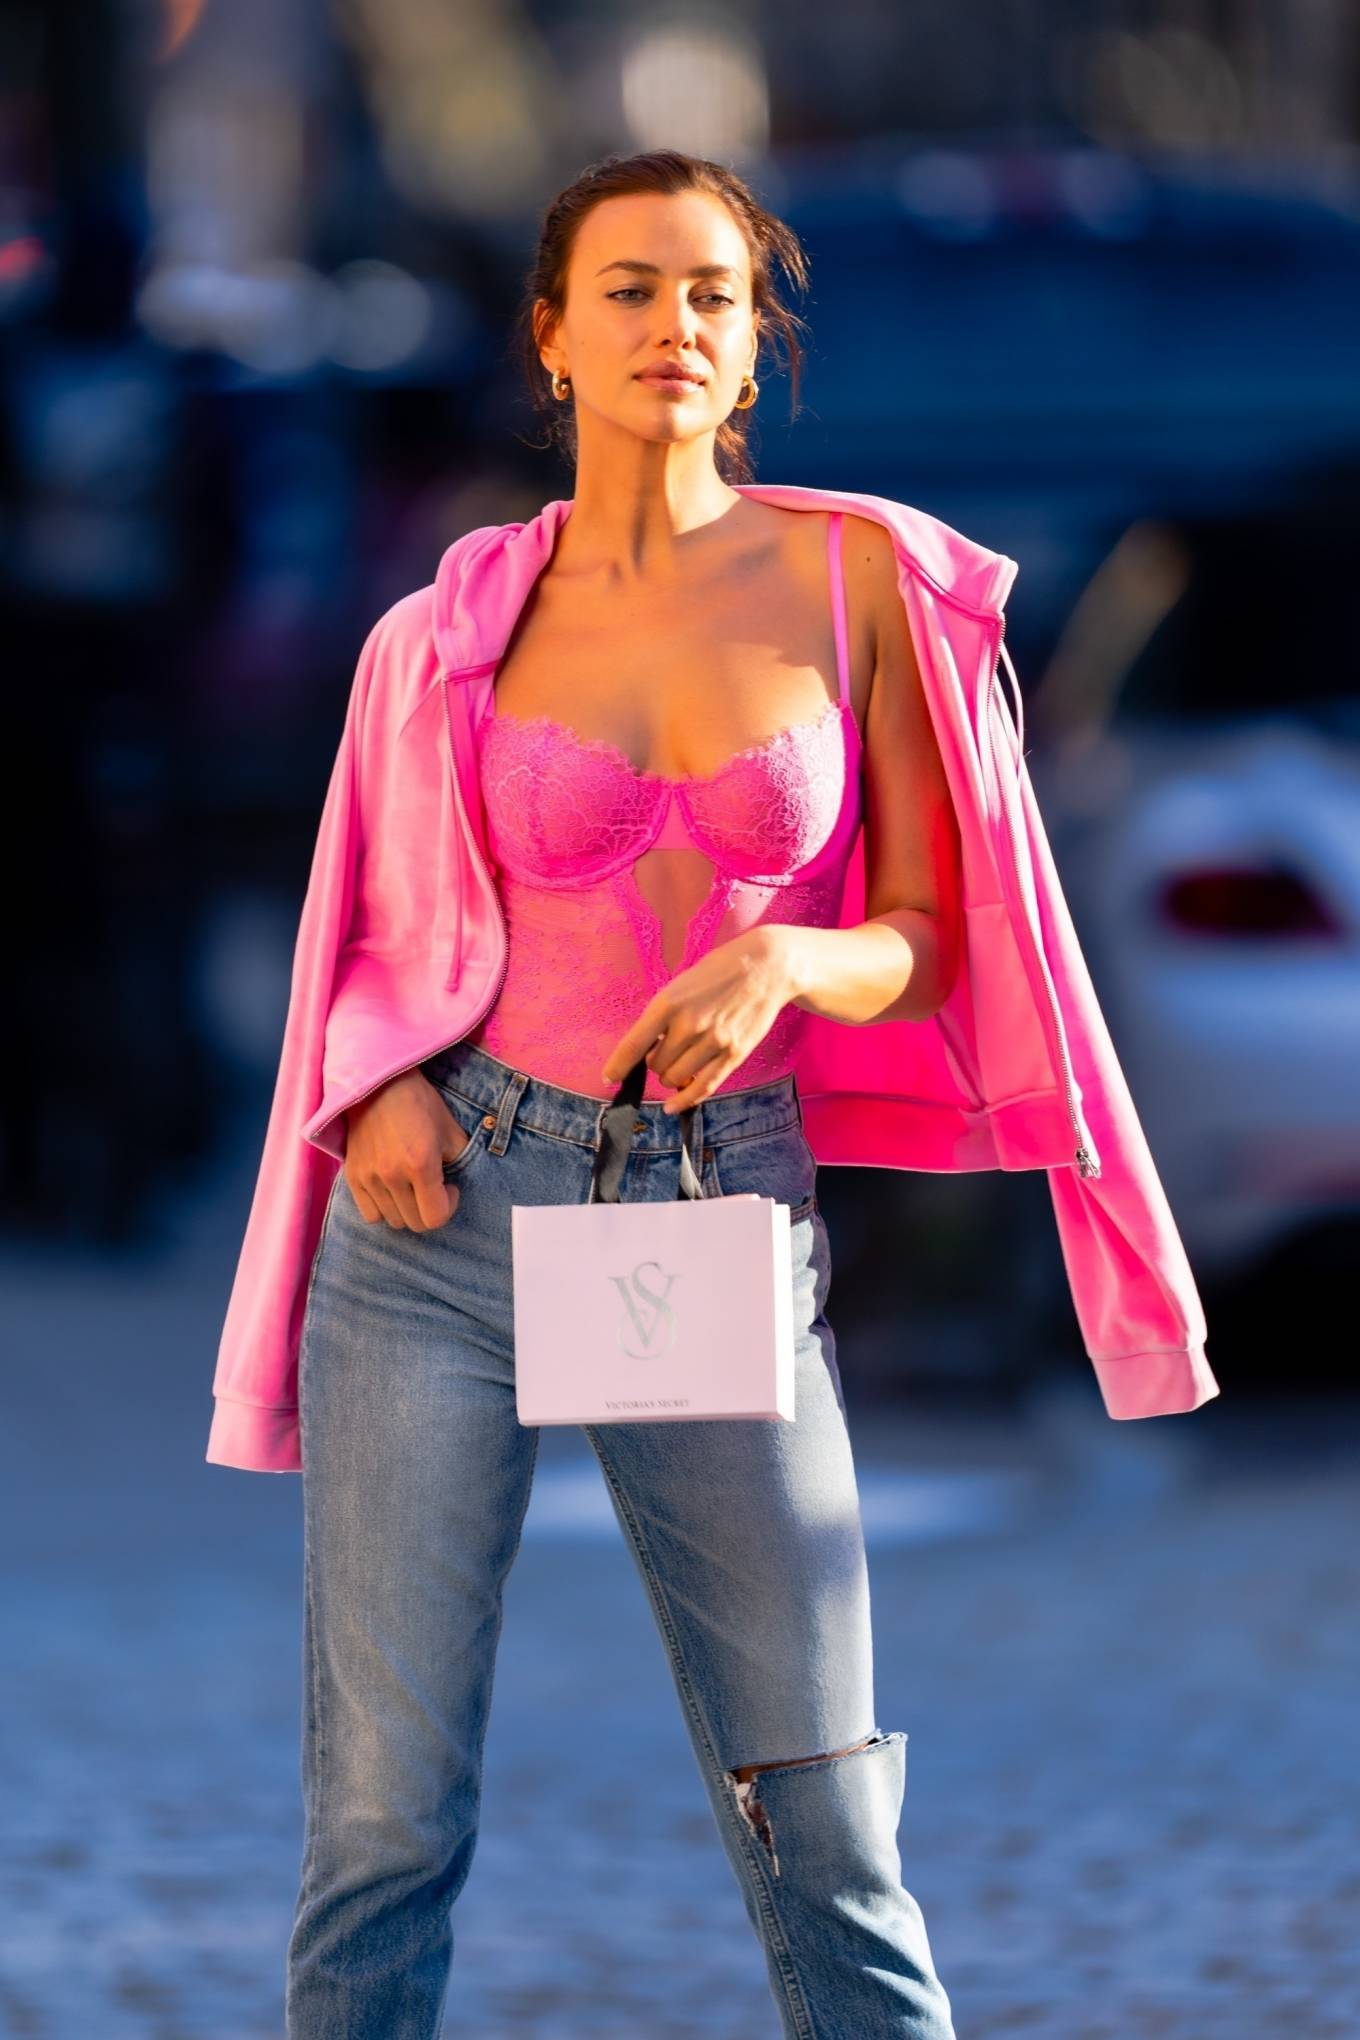 Irina Shayk - Victoria's Secret photoshoot in New York